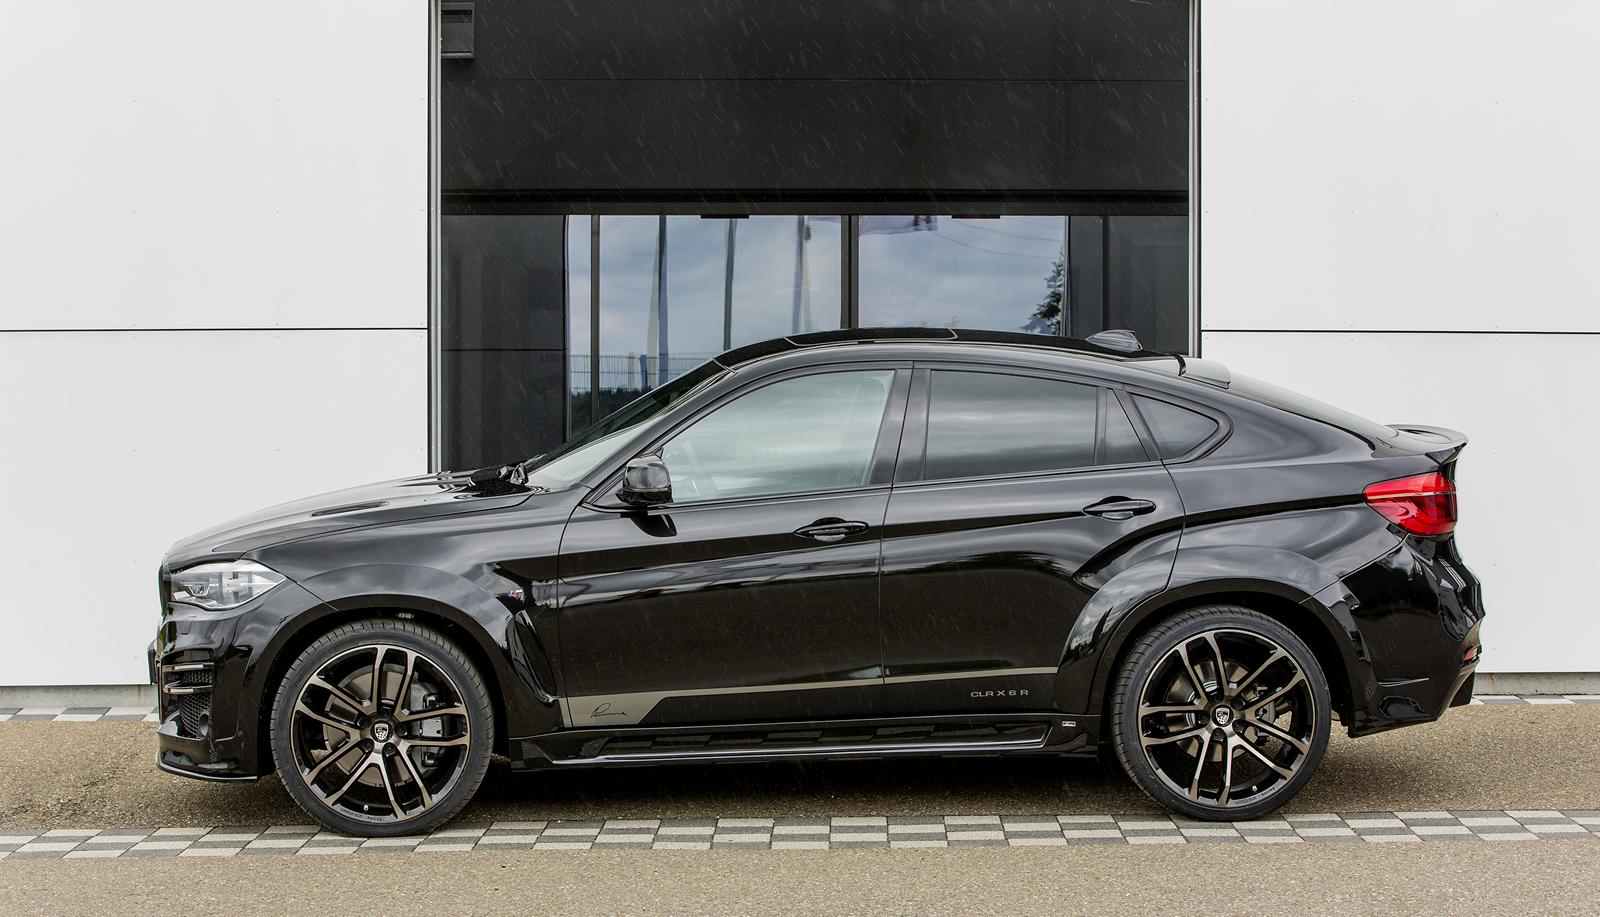 Bmw X6 By Lumma Design 08 Mppsociety